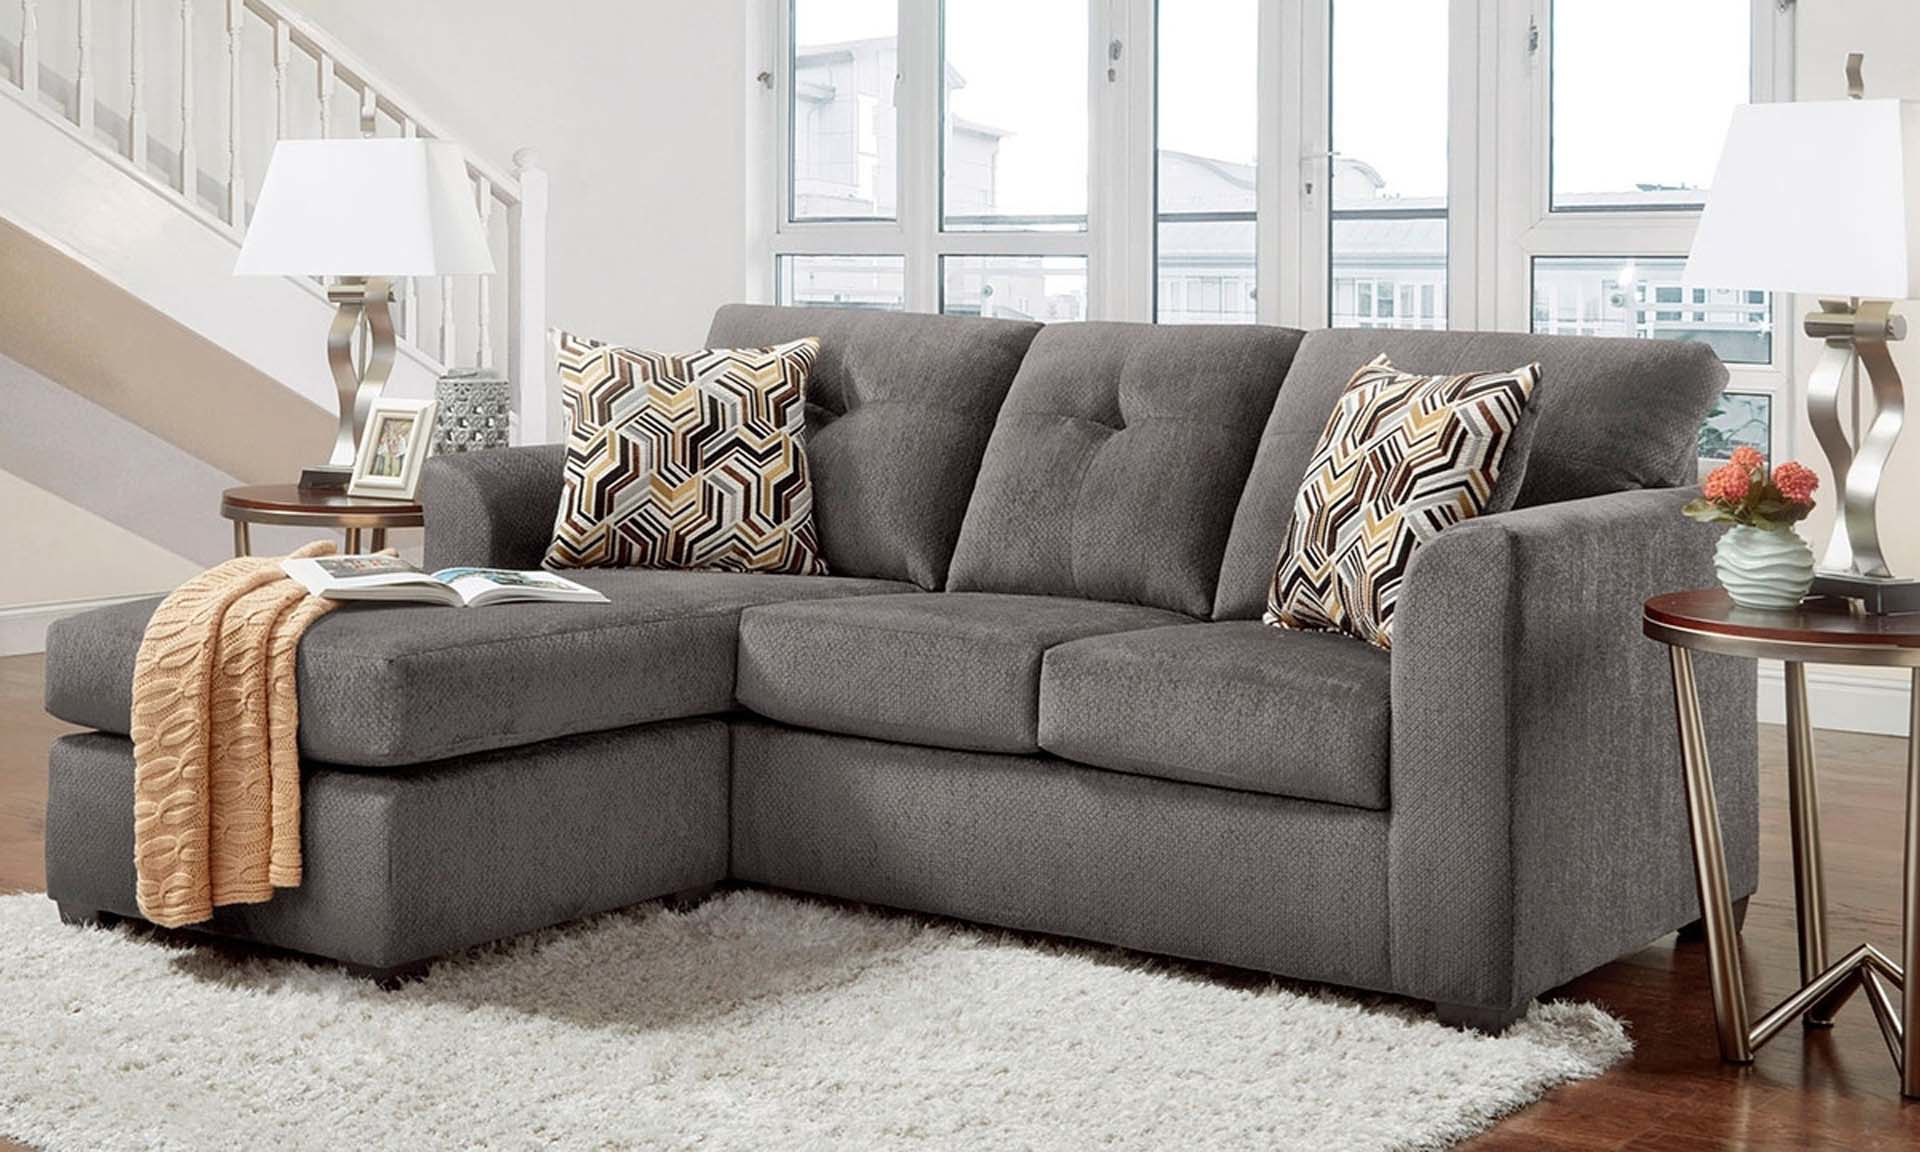 Modern Grey Connection Fabric 2 Seater Zinc Sofa Soft Fibre Filled Back Cushions For Support And Comfort Foam Seating